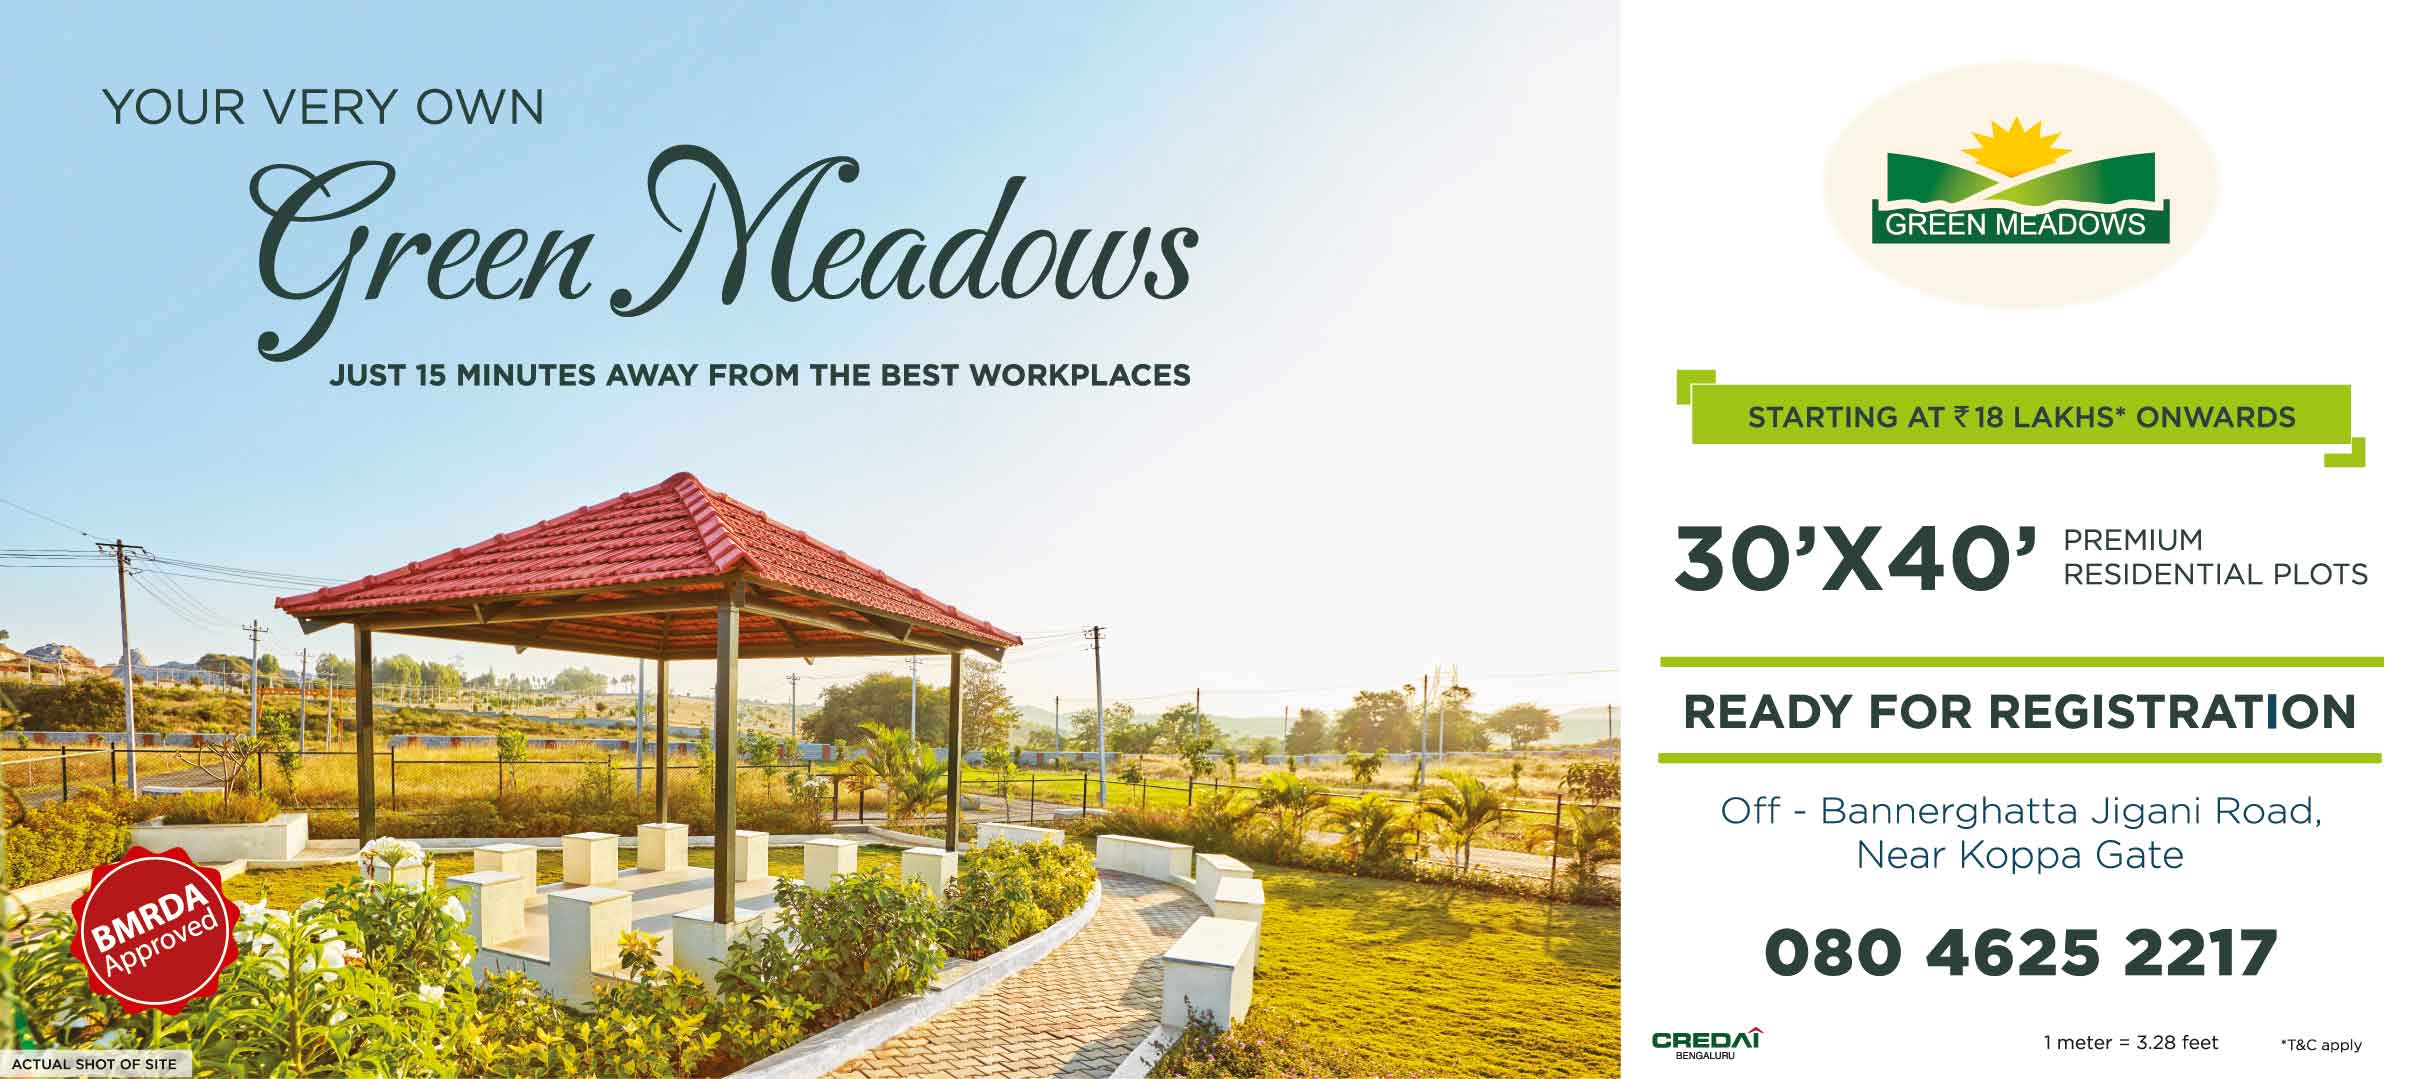 GREEN MEADOWS NEW